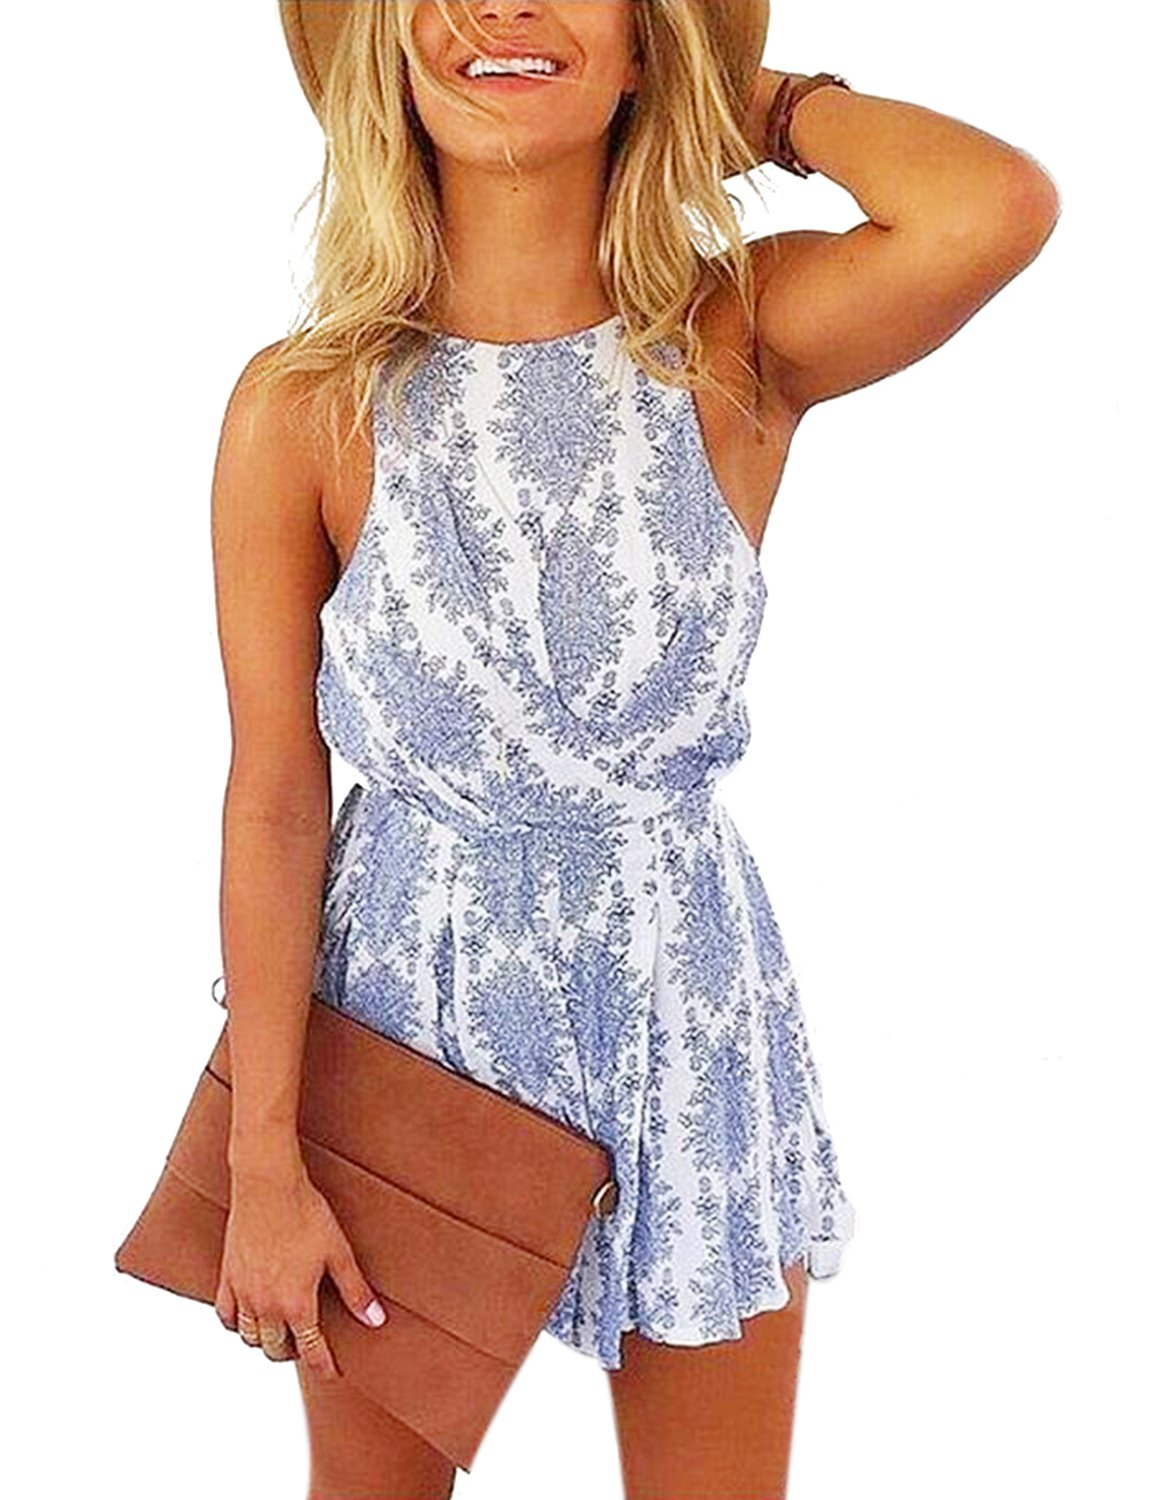 Sunmner Women Strap Backless Jumpsuit Halter Sleeveless Floral Print Shorts Beach Jumpsuit